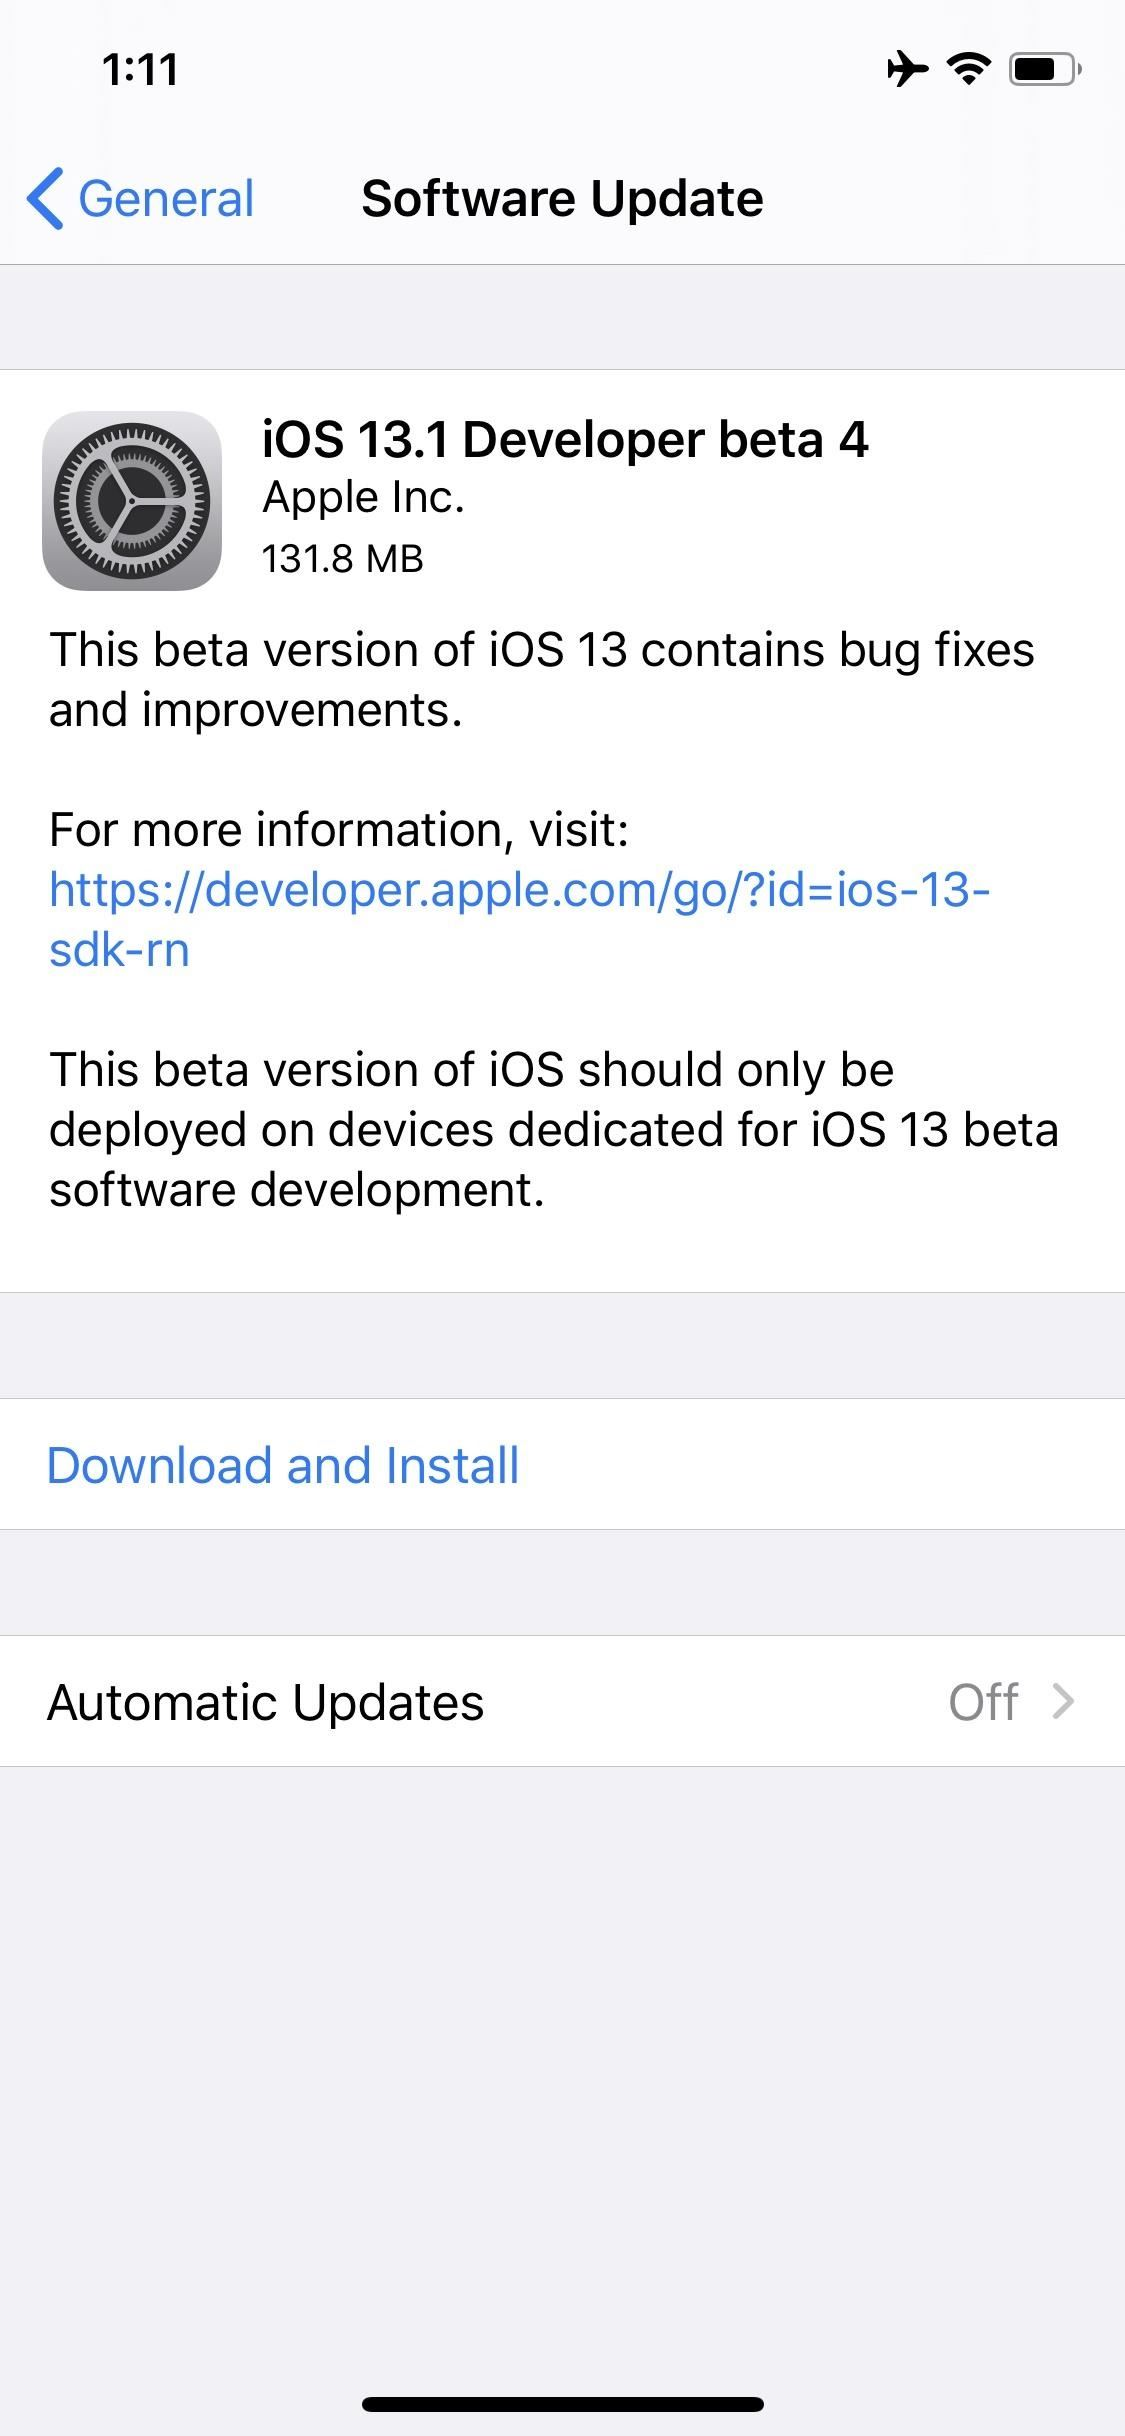 Apple Just Released iOS 13.1 Developer Beta 4 for iPhone